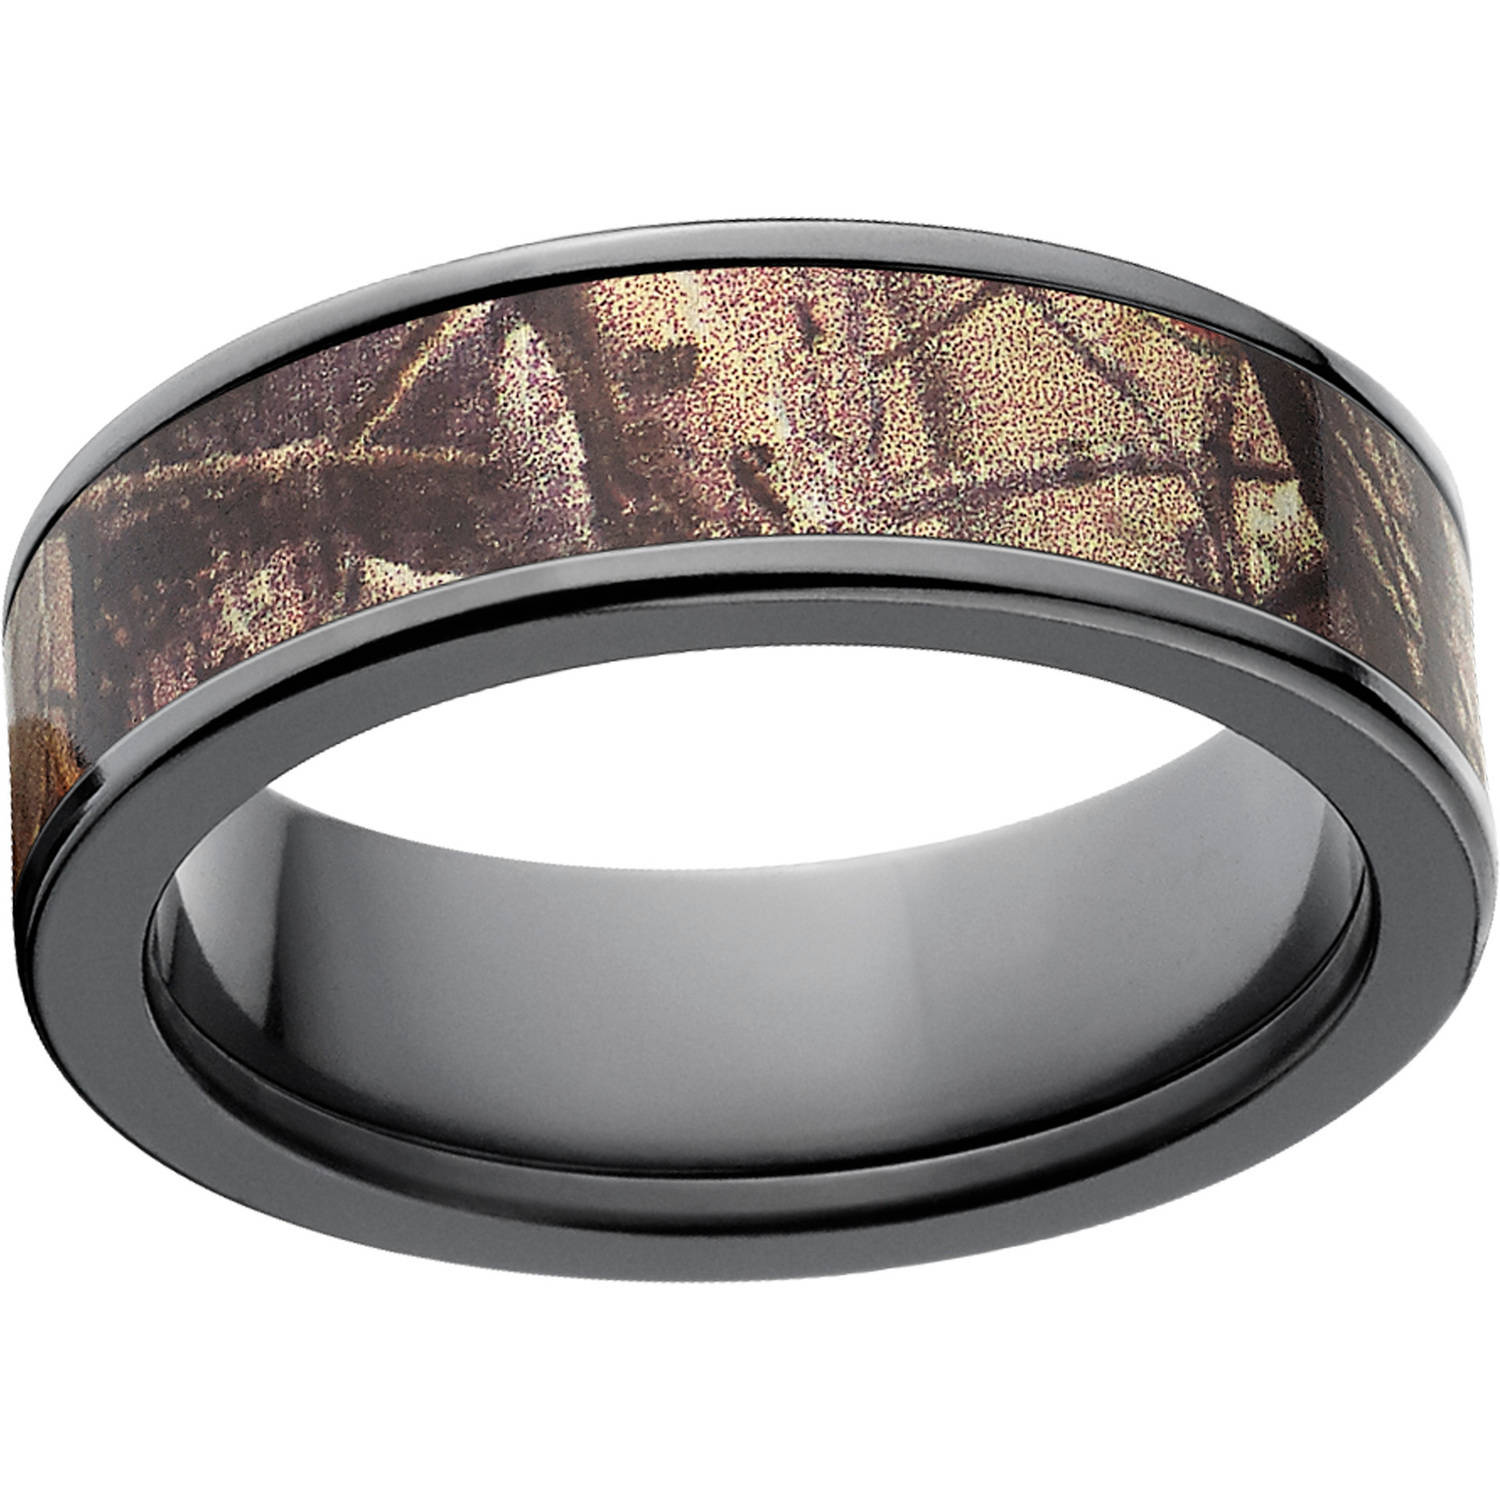 Realtree AP Men's Camo 7mm Black Zirconium Wedding Band with Polished Edges and Deluxe Comfort Fit